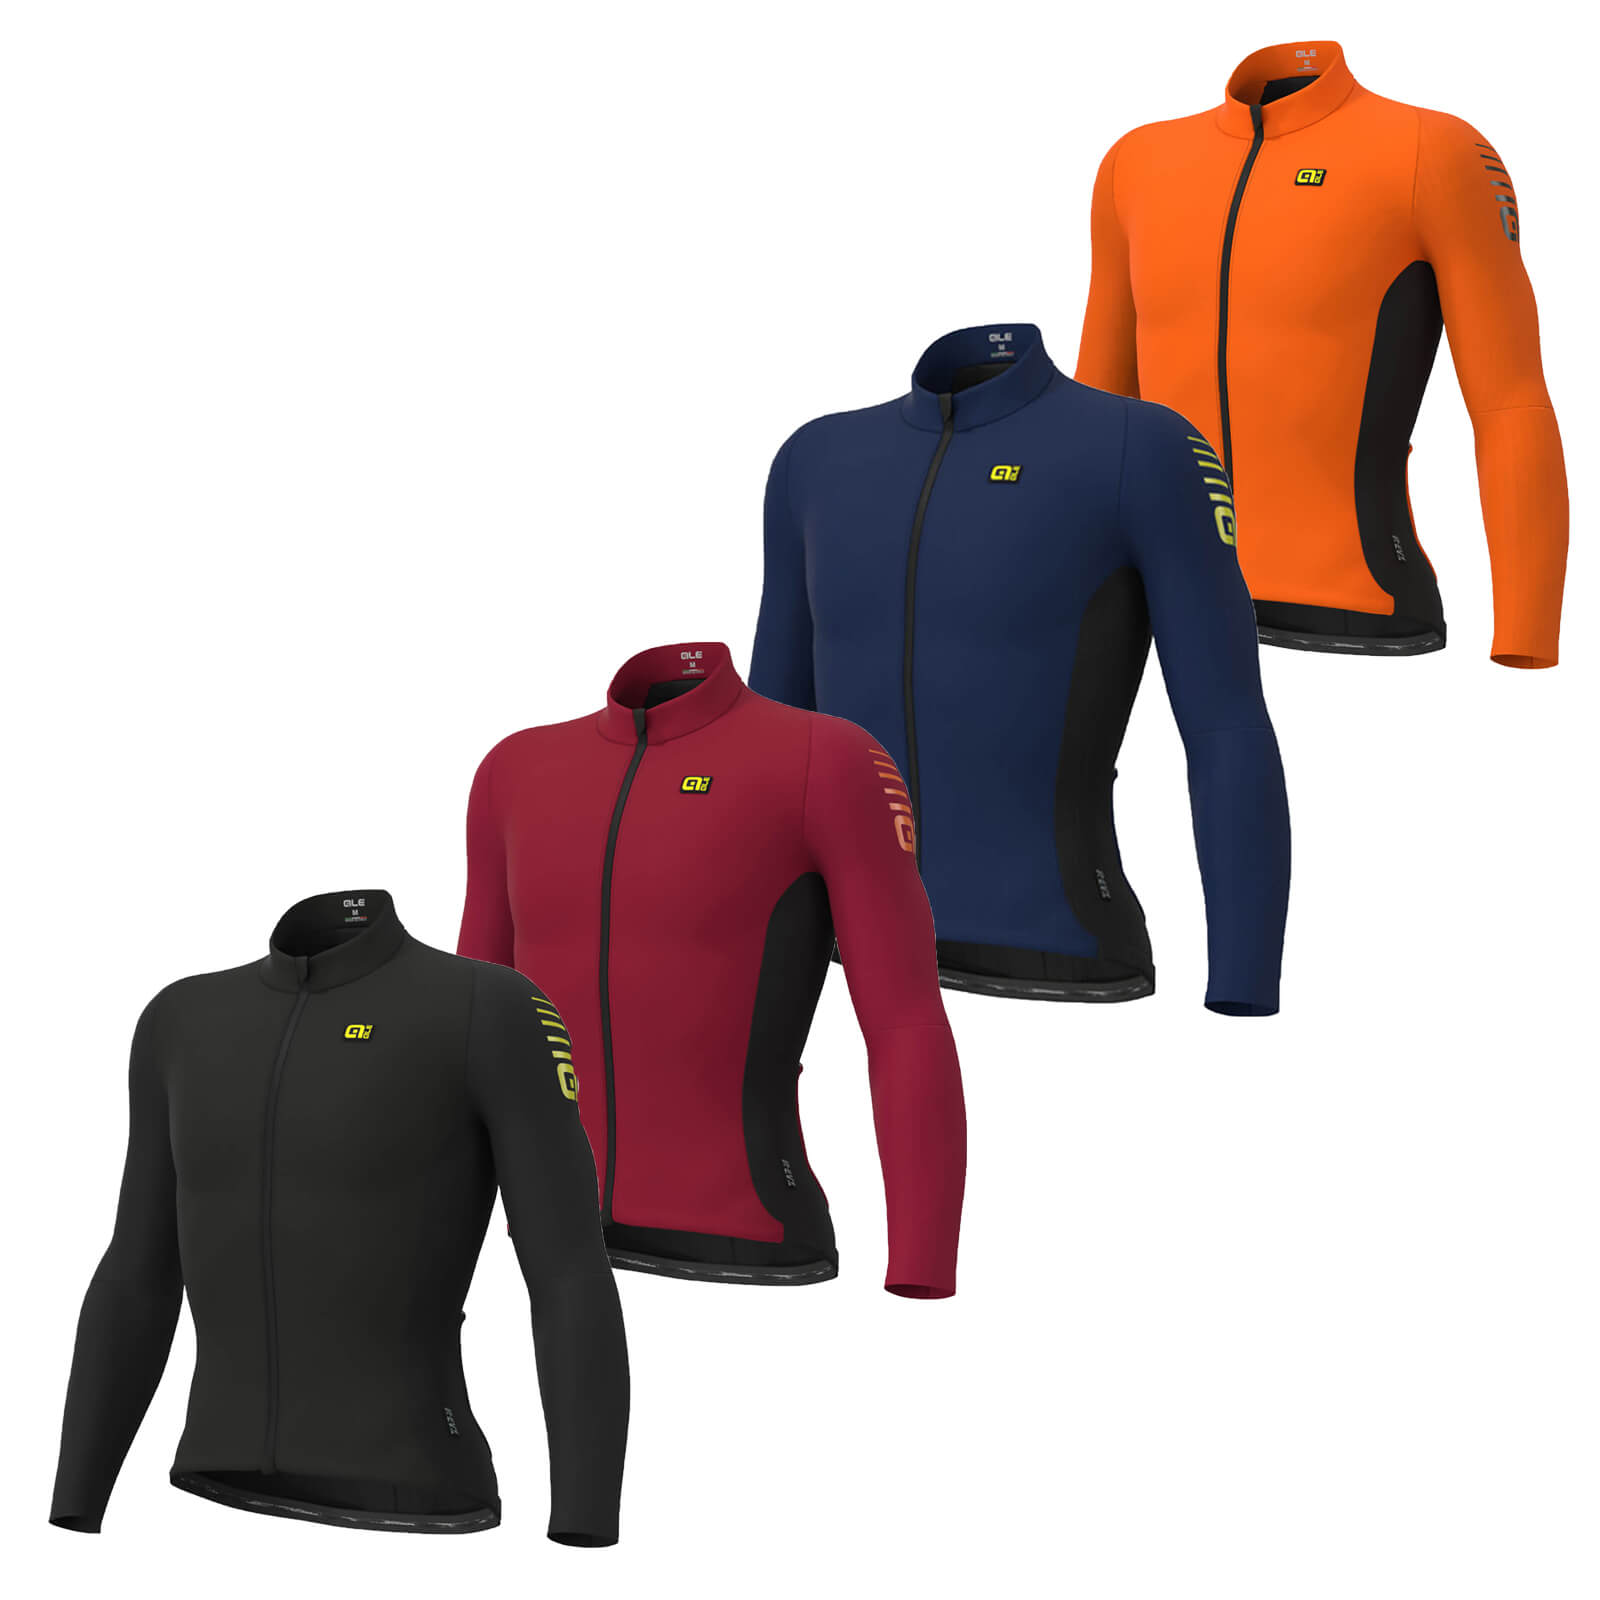 Alé Clima Protection 2.0 Warm Race Long Sleeve Jersey - XL - Masai Red